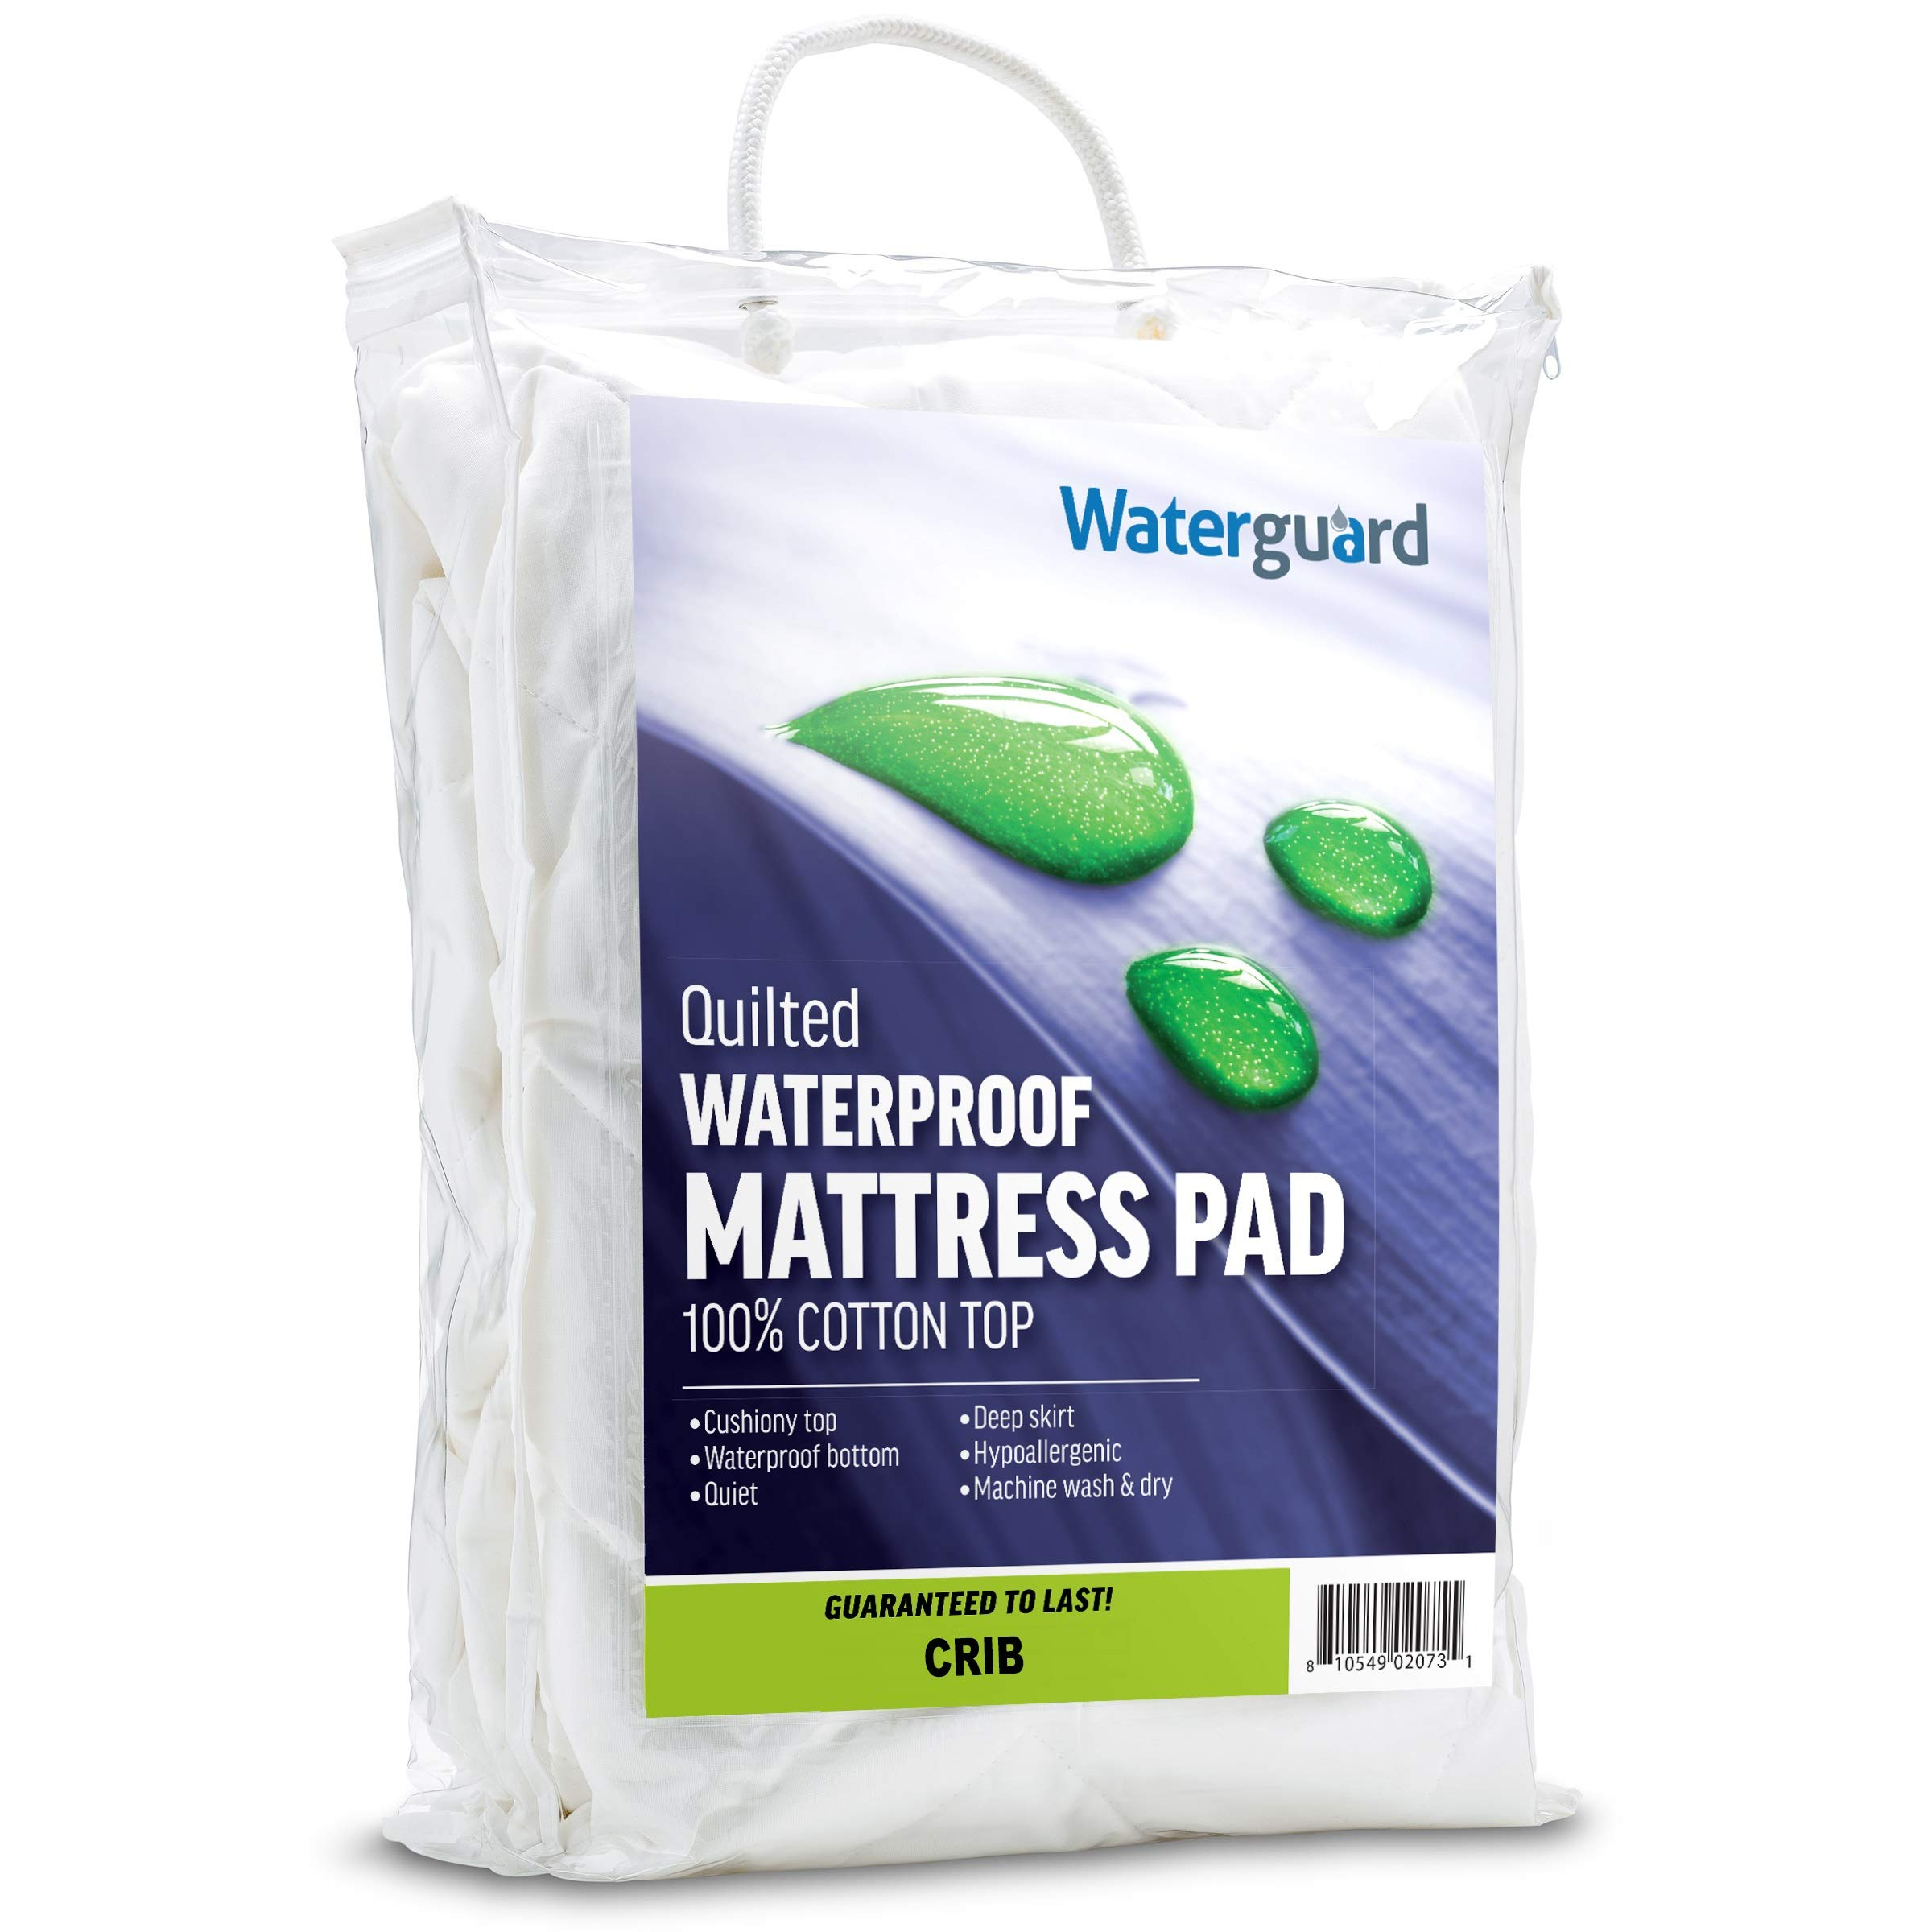 Waterguard Waterproof Crib Mattress pad, Premium Cotton top, Hypoallergenic, Quilted, Ultra Soft and Breathable, Baby Fitted Cribs Protectors by Waterguard